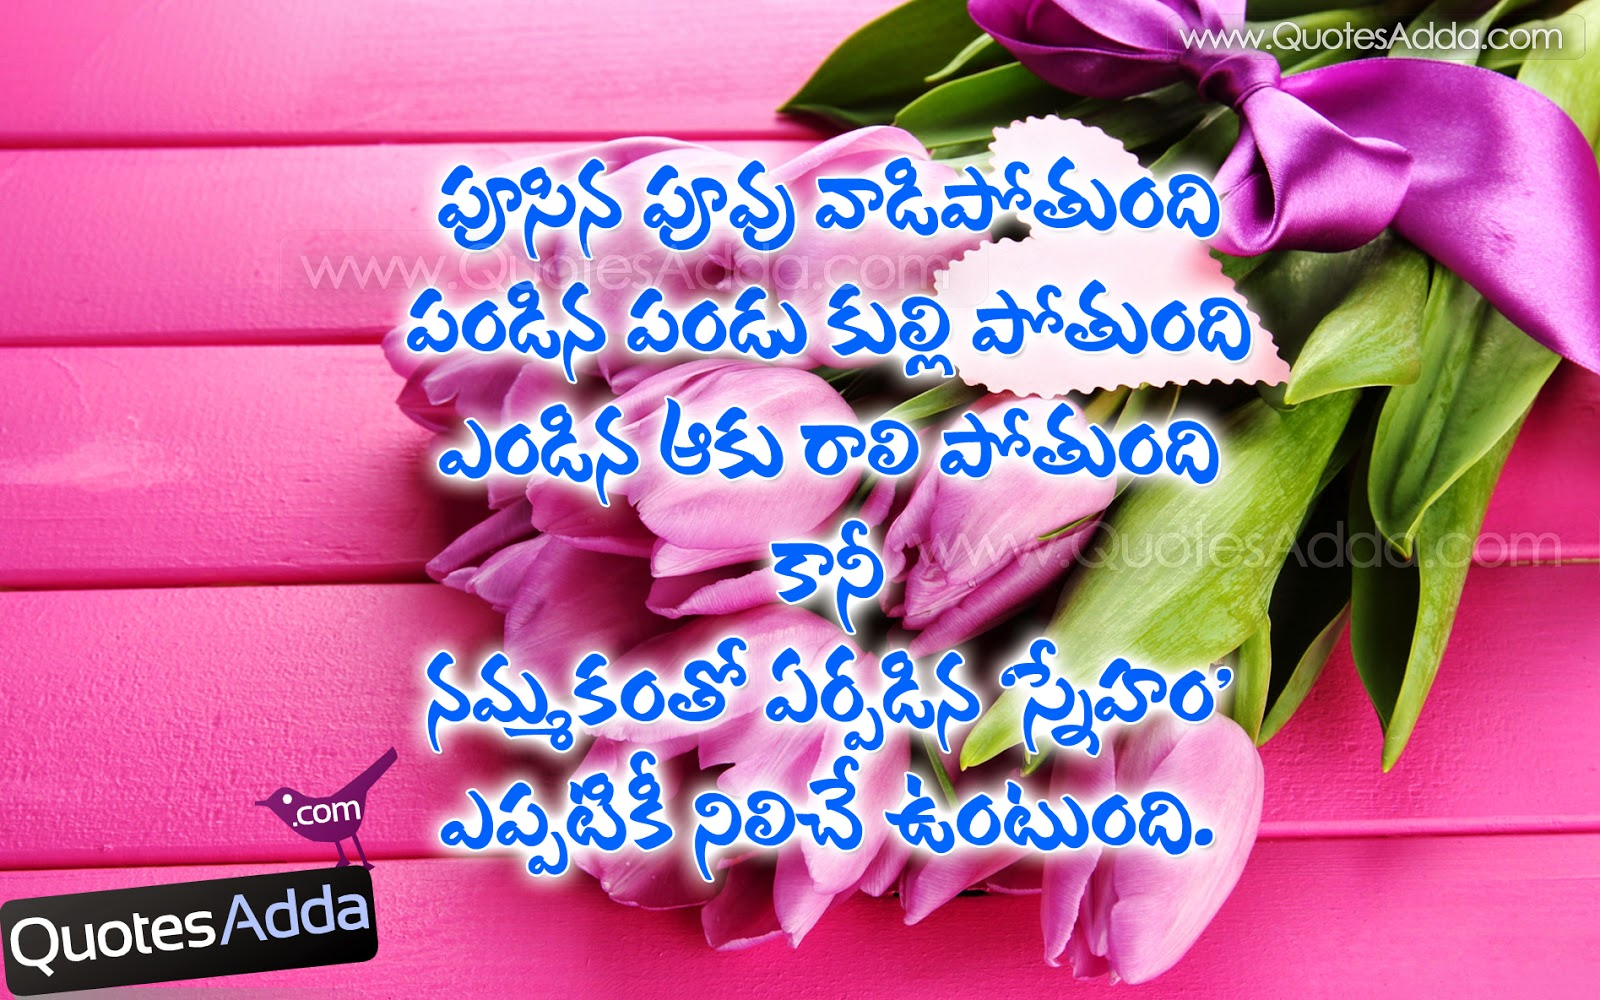 New Quotes About Friendship Telugu Nice Friendship Quotations Latest Telugu New Friendship